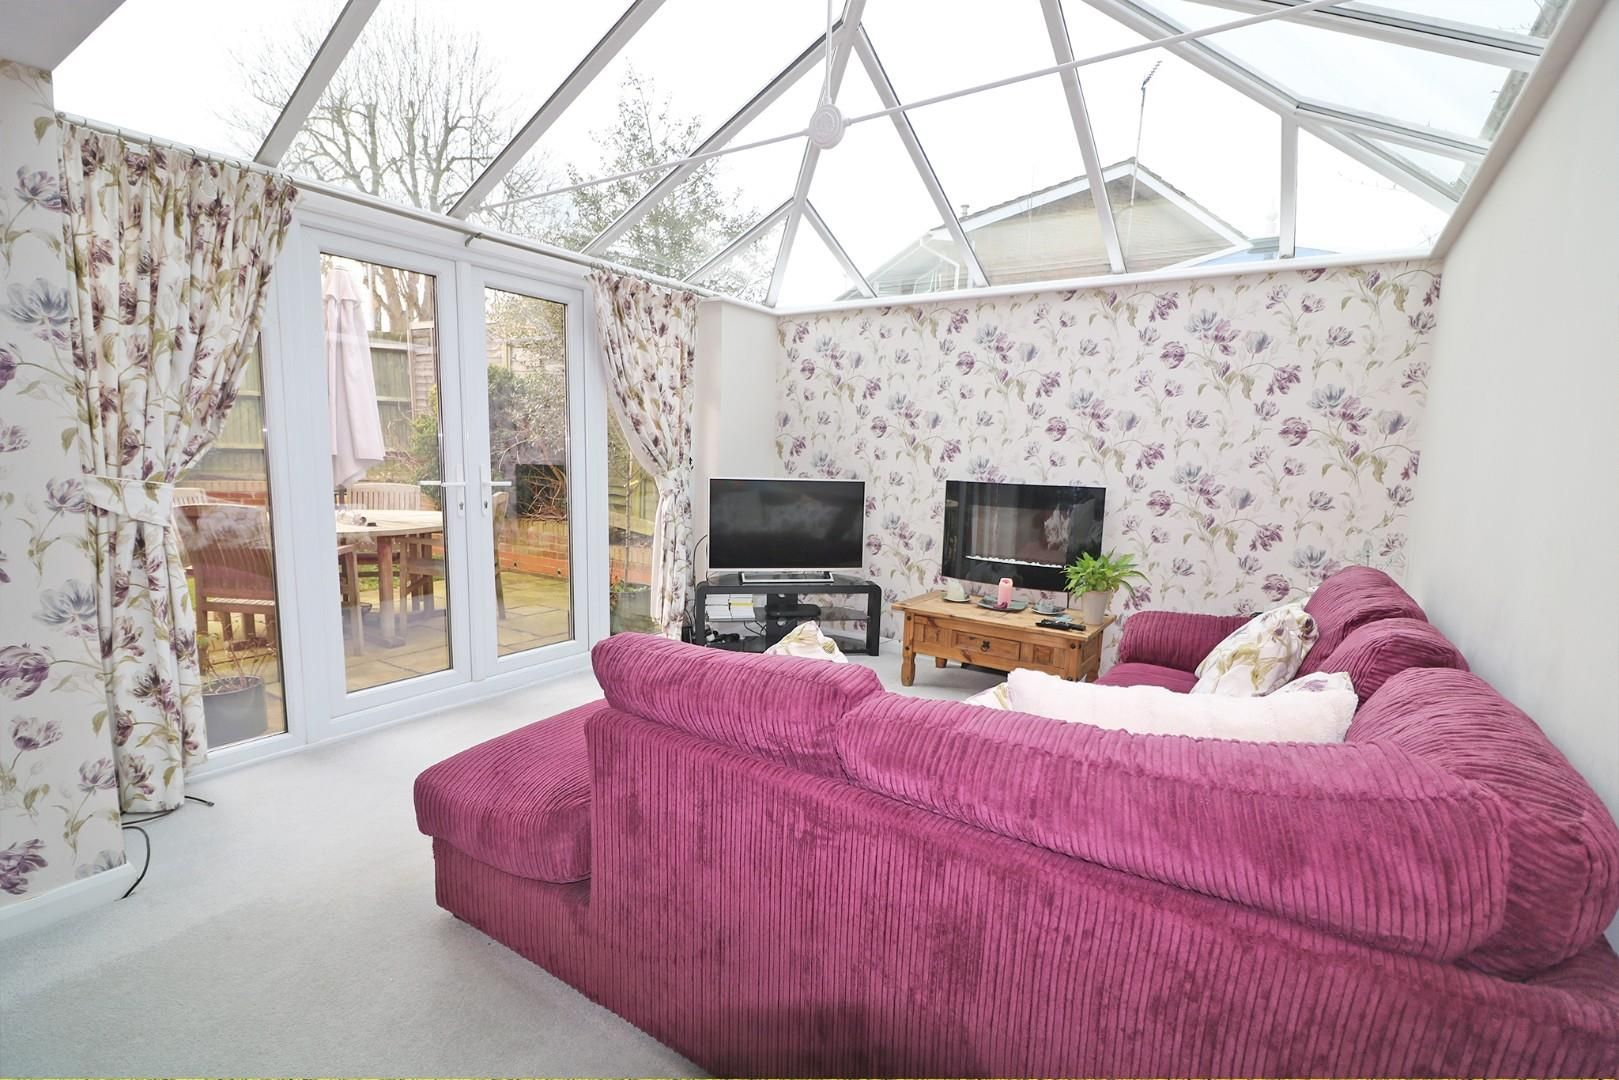 3 bed house for sale in Woodley 2